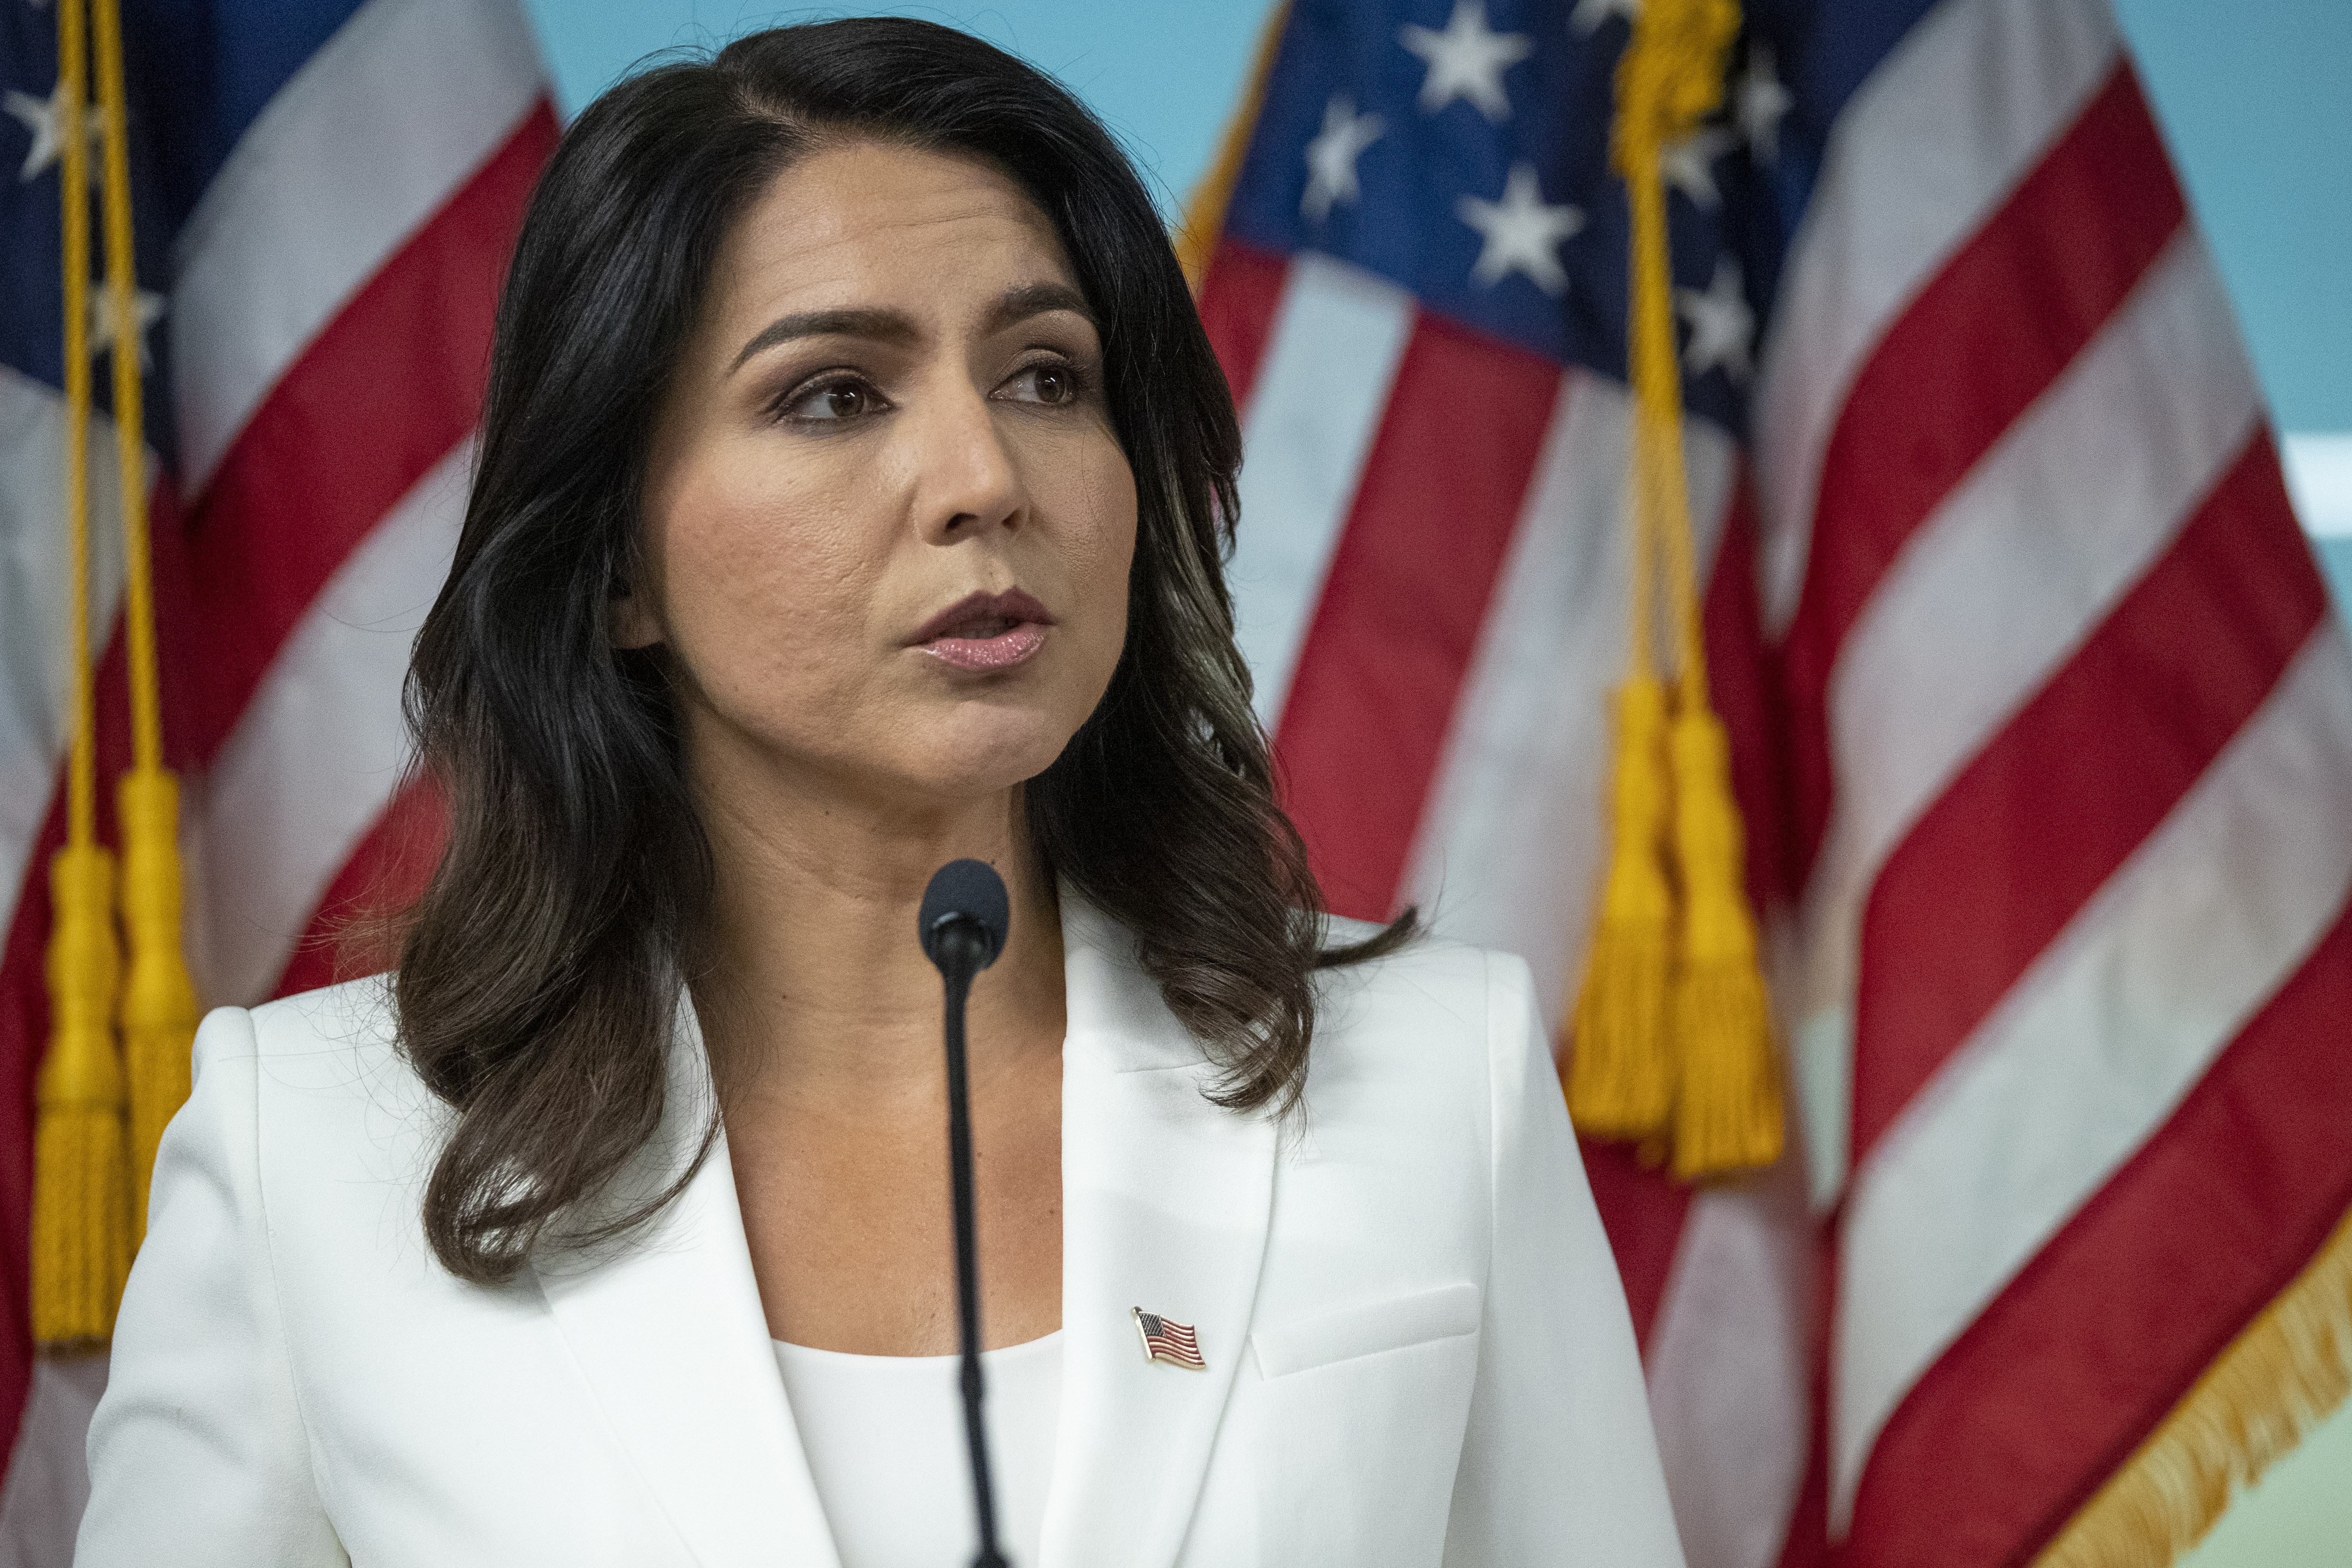 Tulsi Gabbard lawyers accuse Hillary Clinton of 'defamation' for Russian asset claim